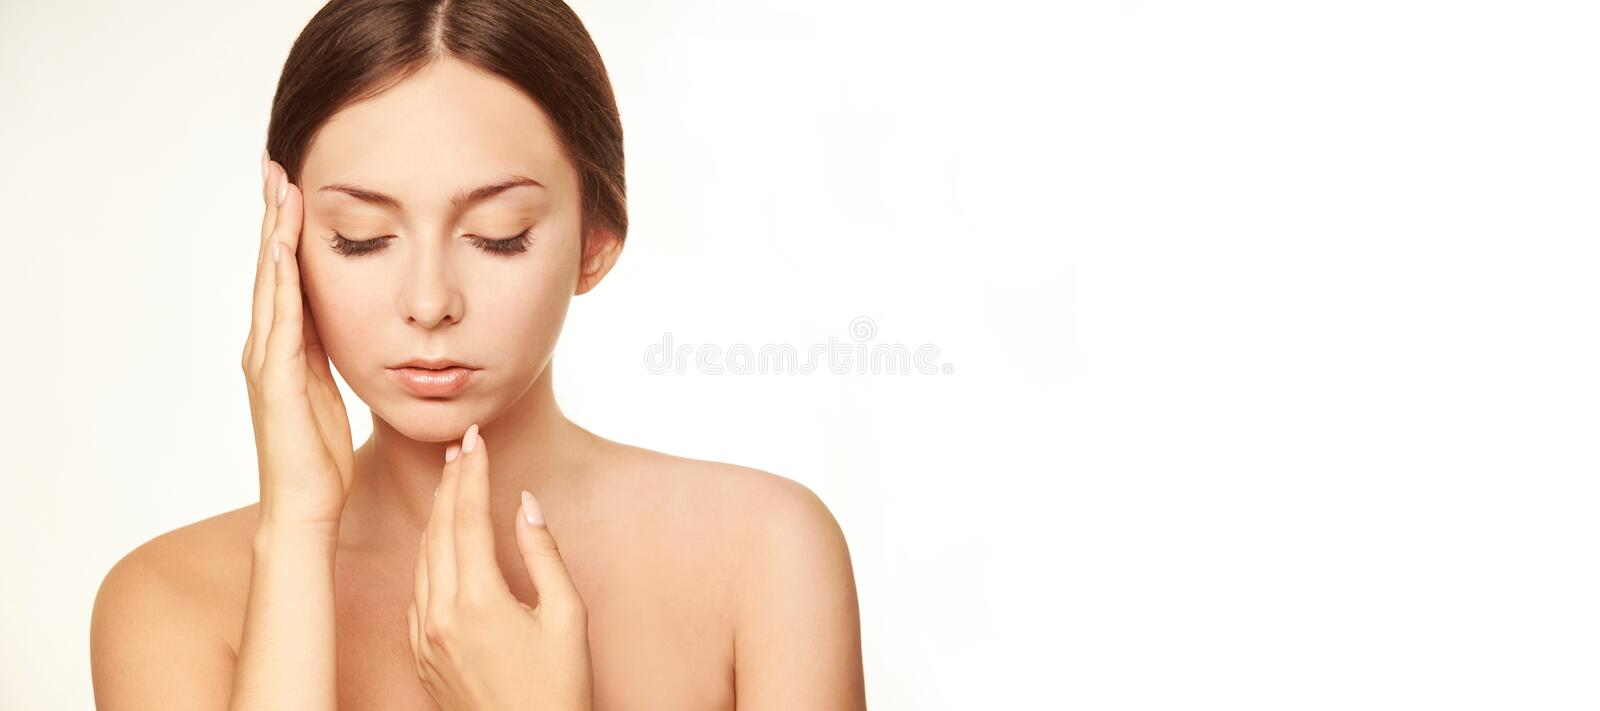 Healthy woman face. Young girl hand concept. Lotion cosmetics stock image